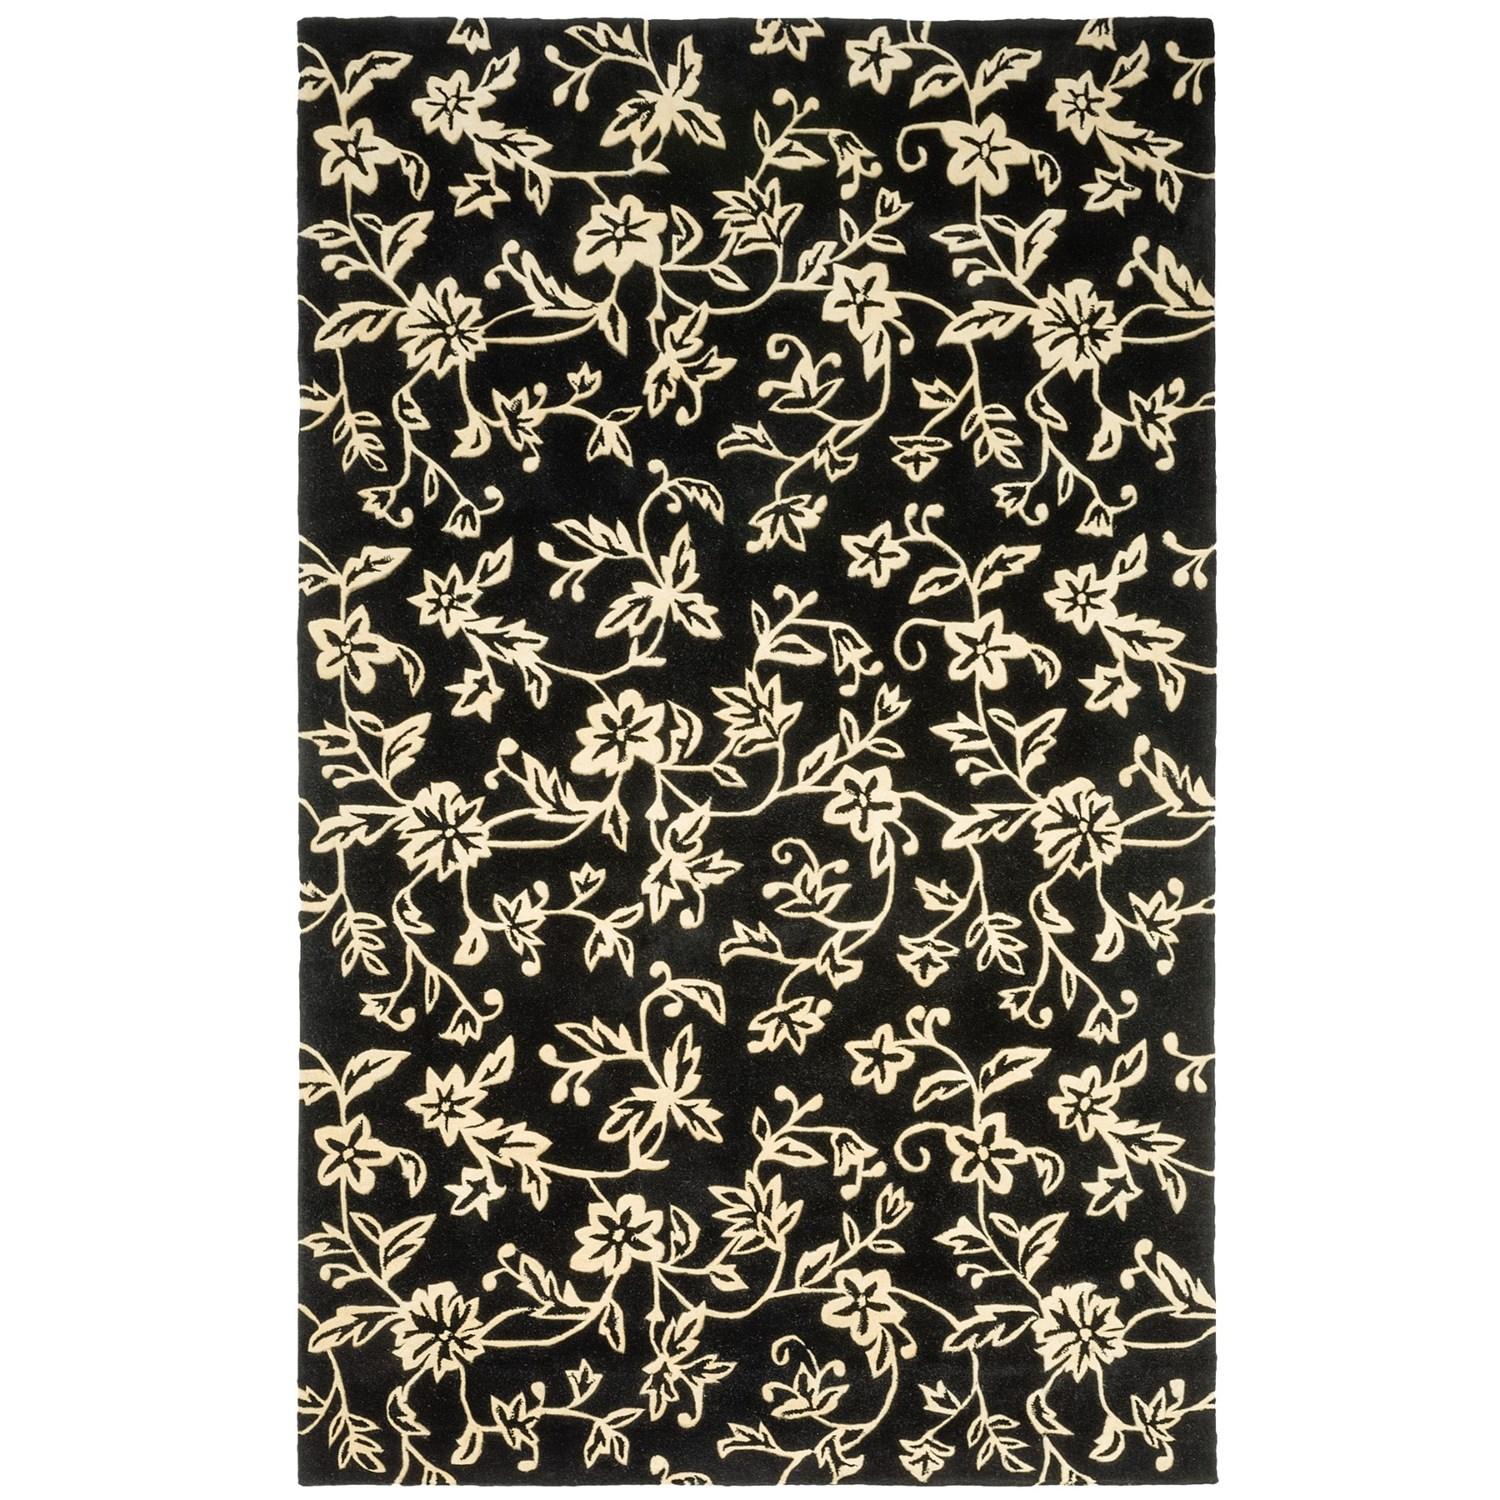 Hri damask collection area rug hand tufted wool 8x11 for Black and white wool rug